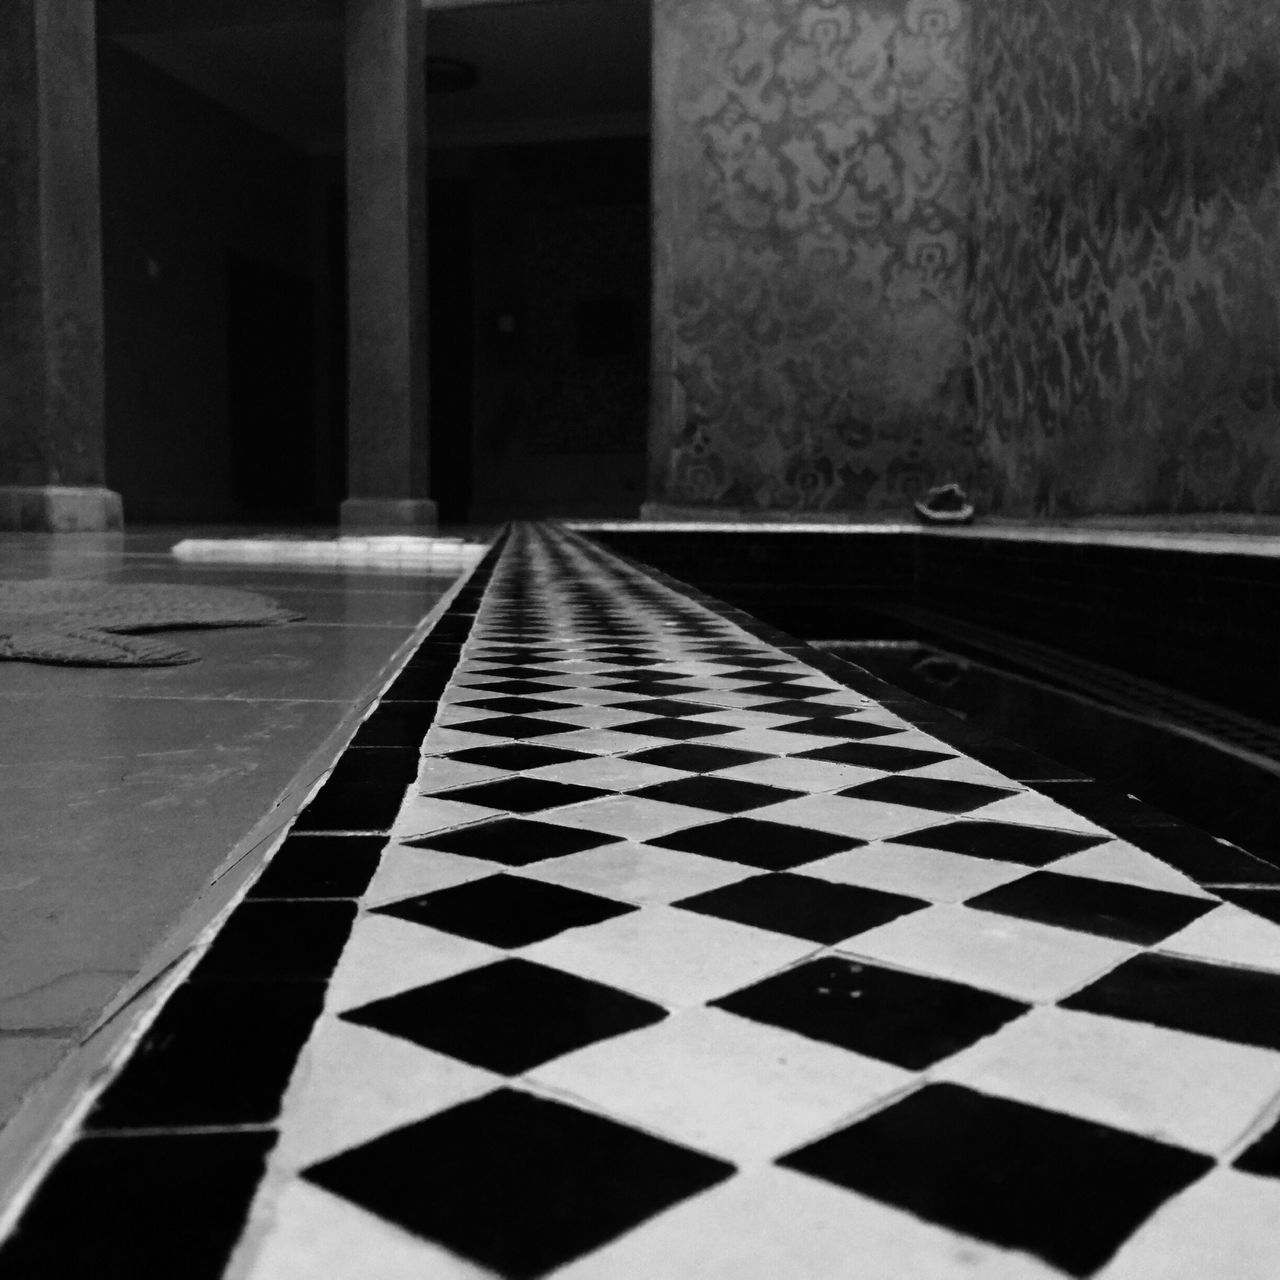 checked pattern, chess, chess board, indoors, chess piece, leisure games, square shape, pattern, no people, black color, strategy, competition, challenge, close-up, day